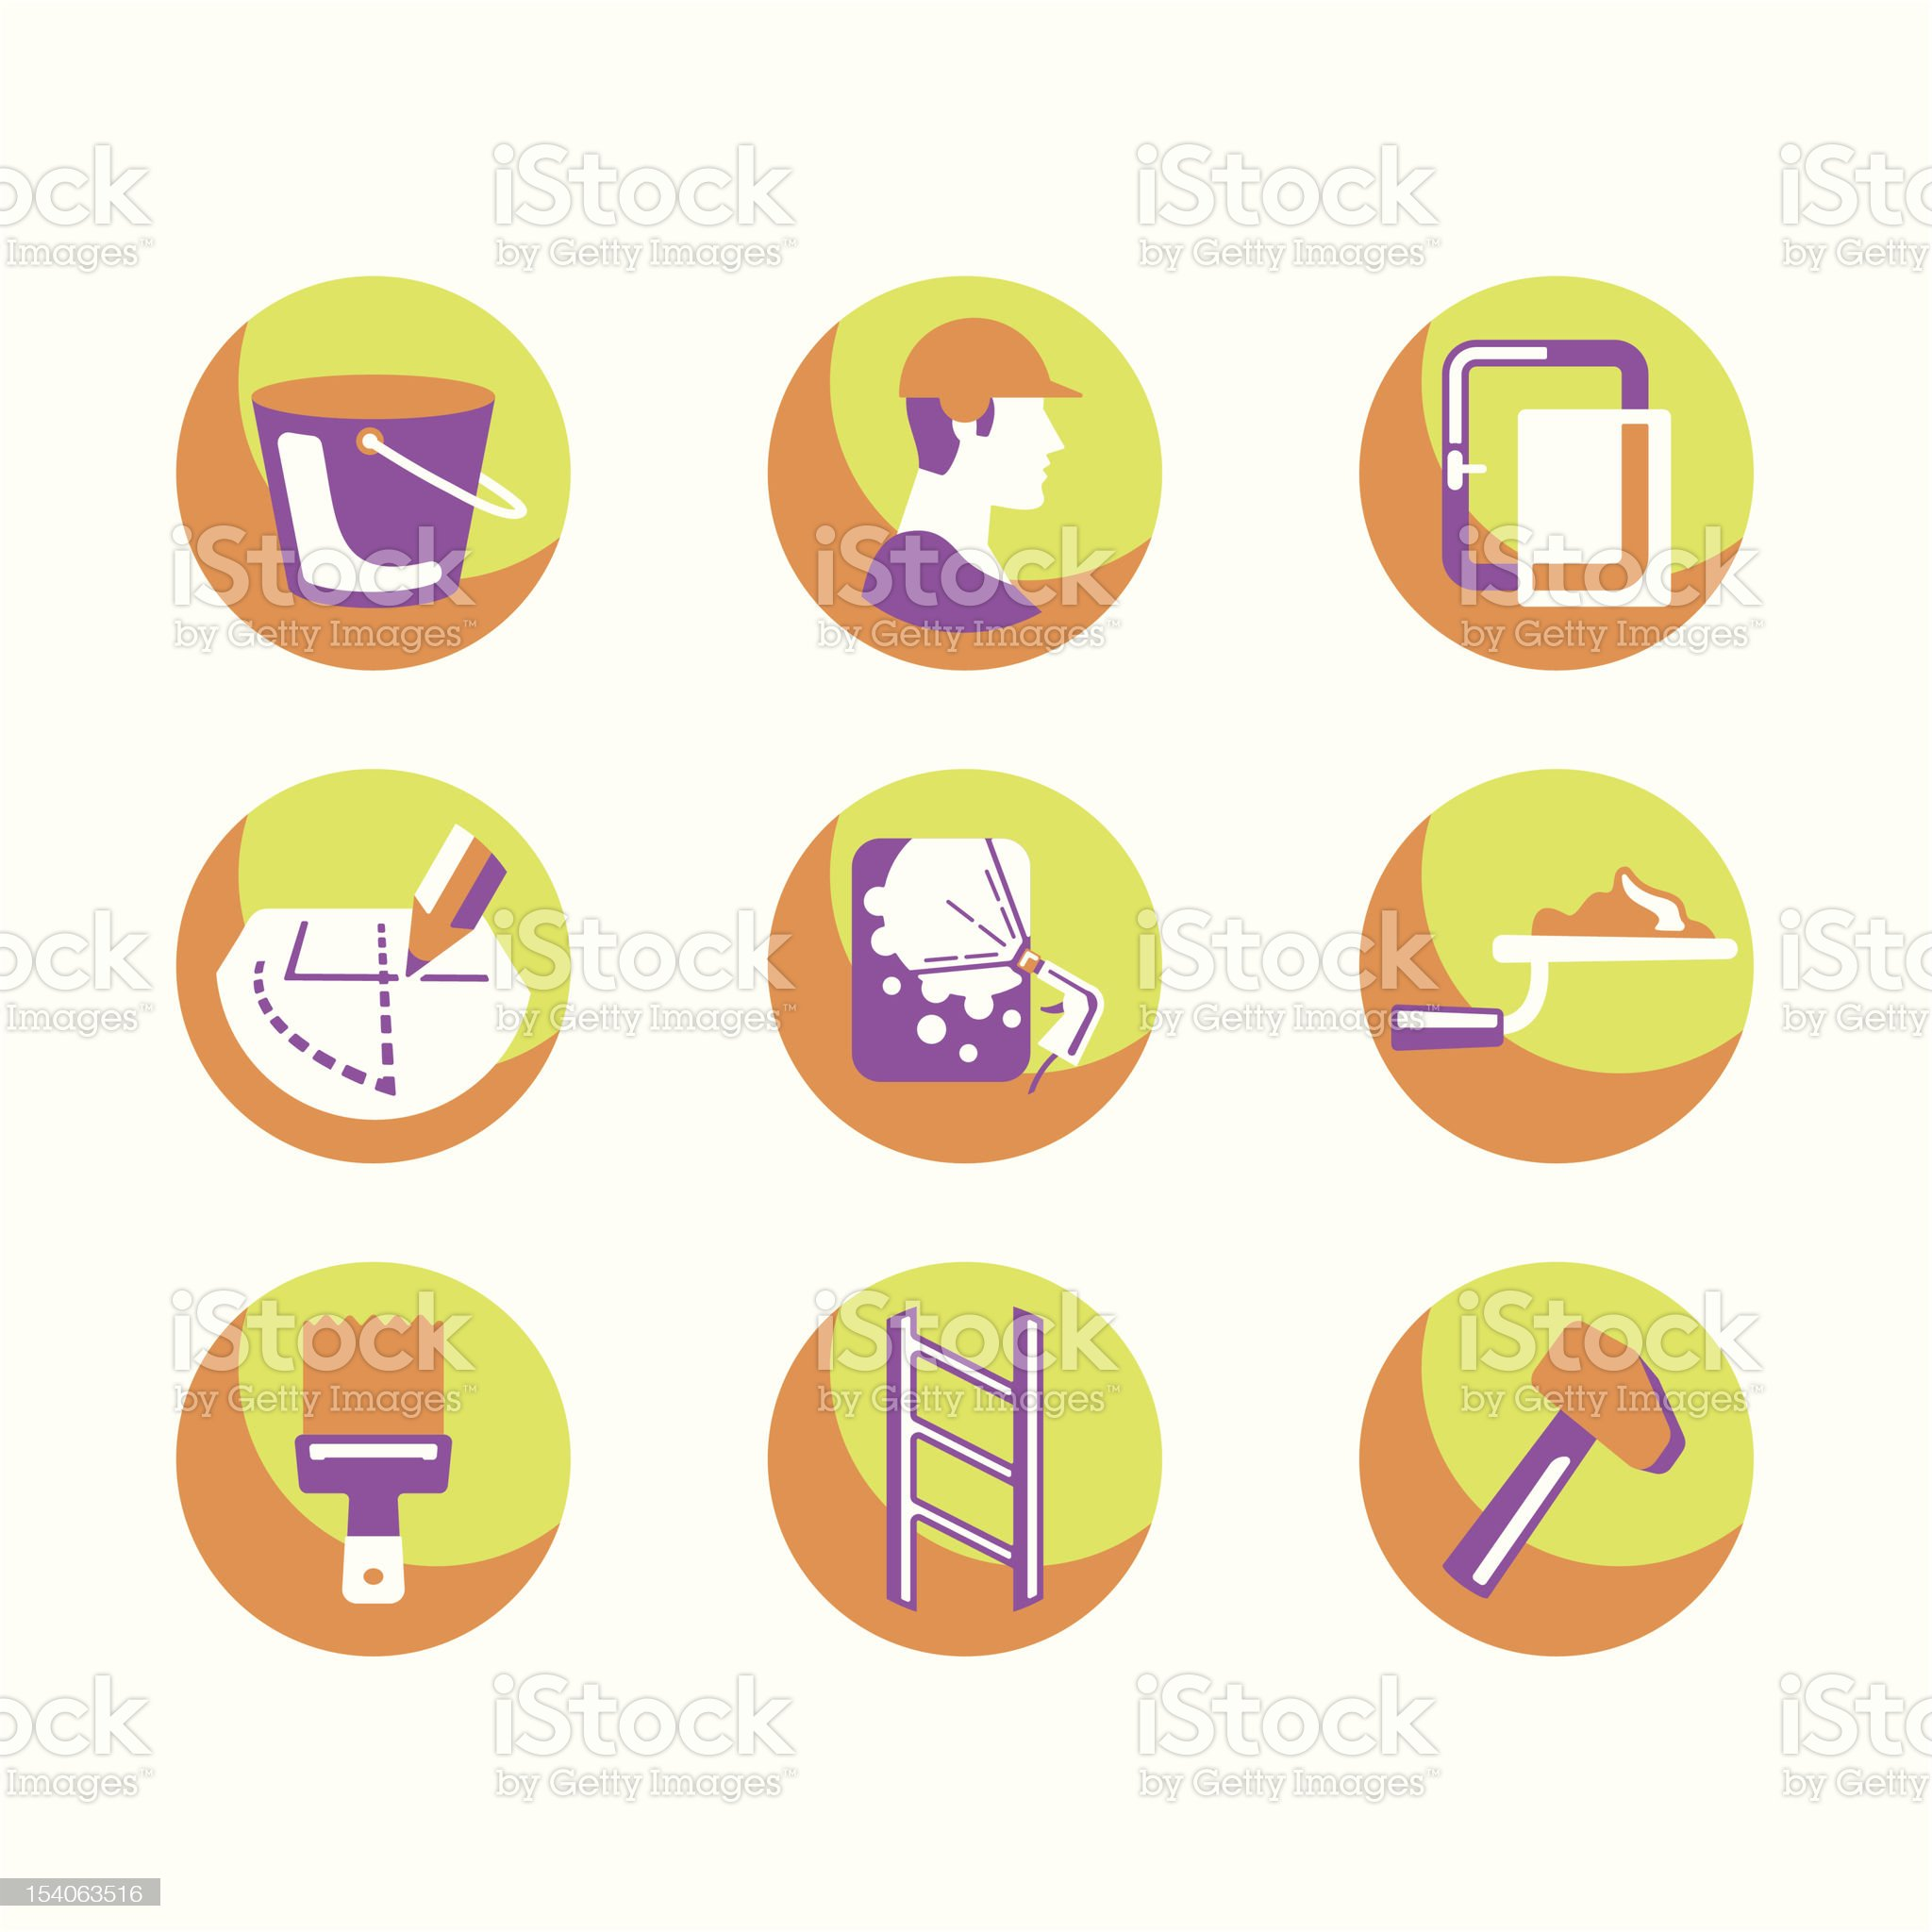 Repair Icons Series royalty-free stock vector art